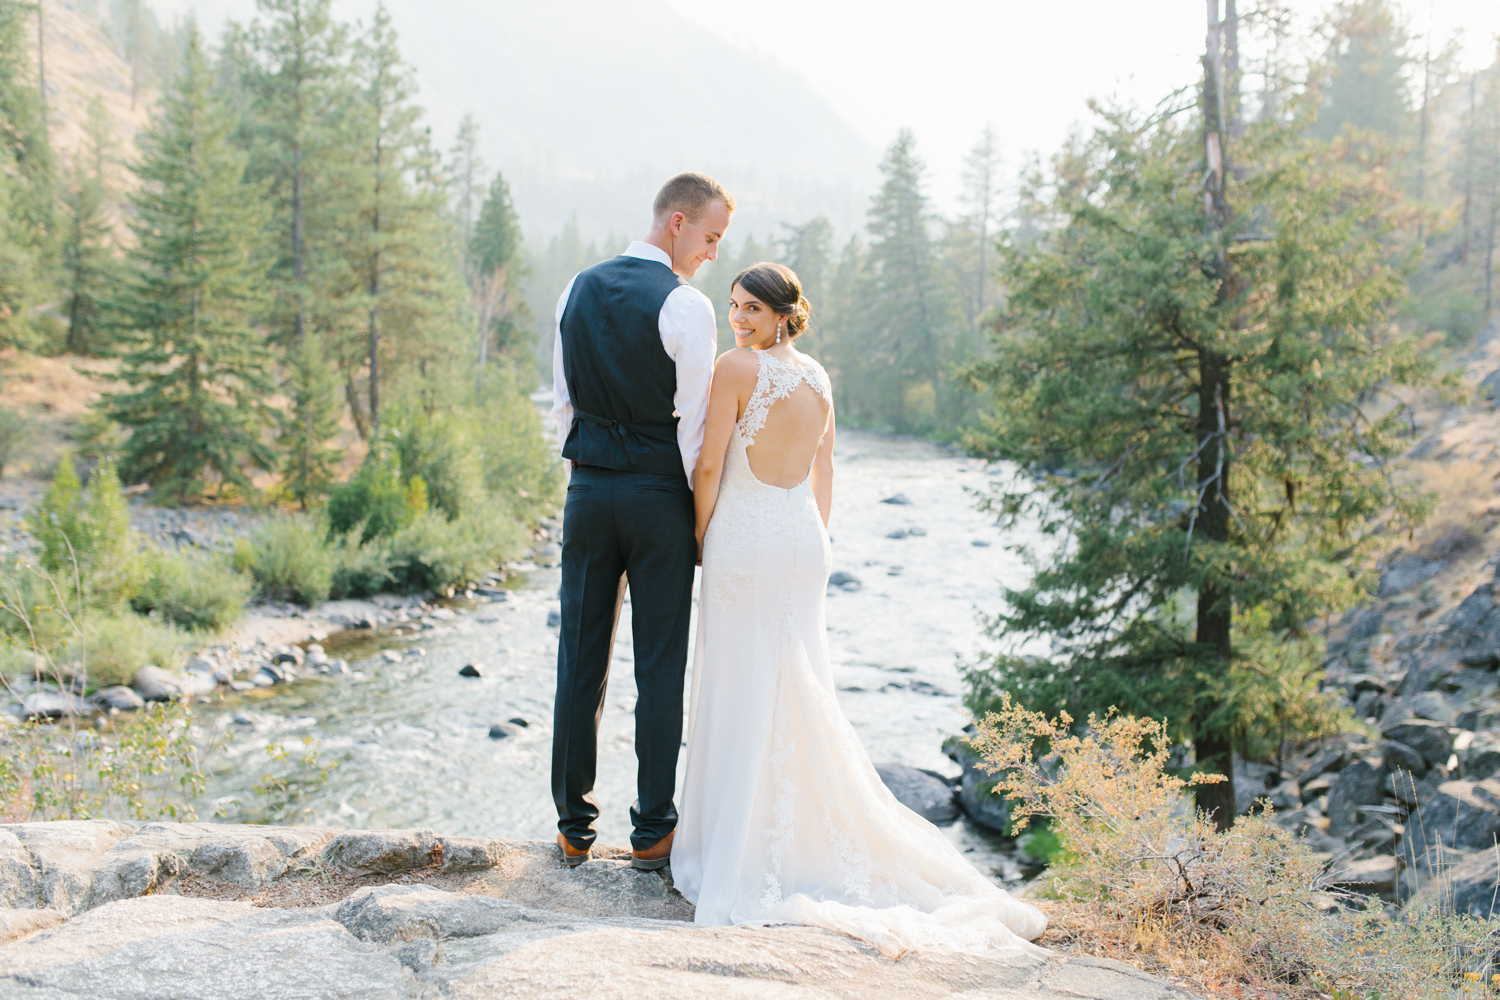 Grey and White Wedding in the Mountains of Leavenworth, Washington | Sleeping Lady | Classic and Timeless Wedding | VSCO | Stunning Mountain Top Bride and Groom Portraits on the Icicle River.jpg-3343.jpg